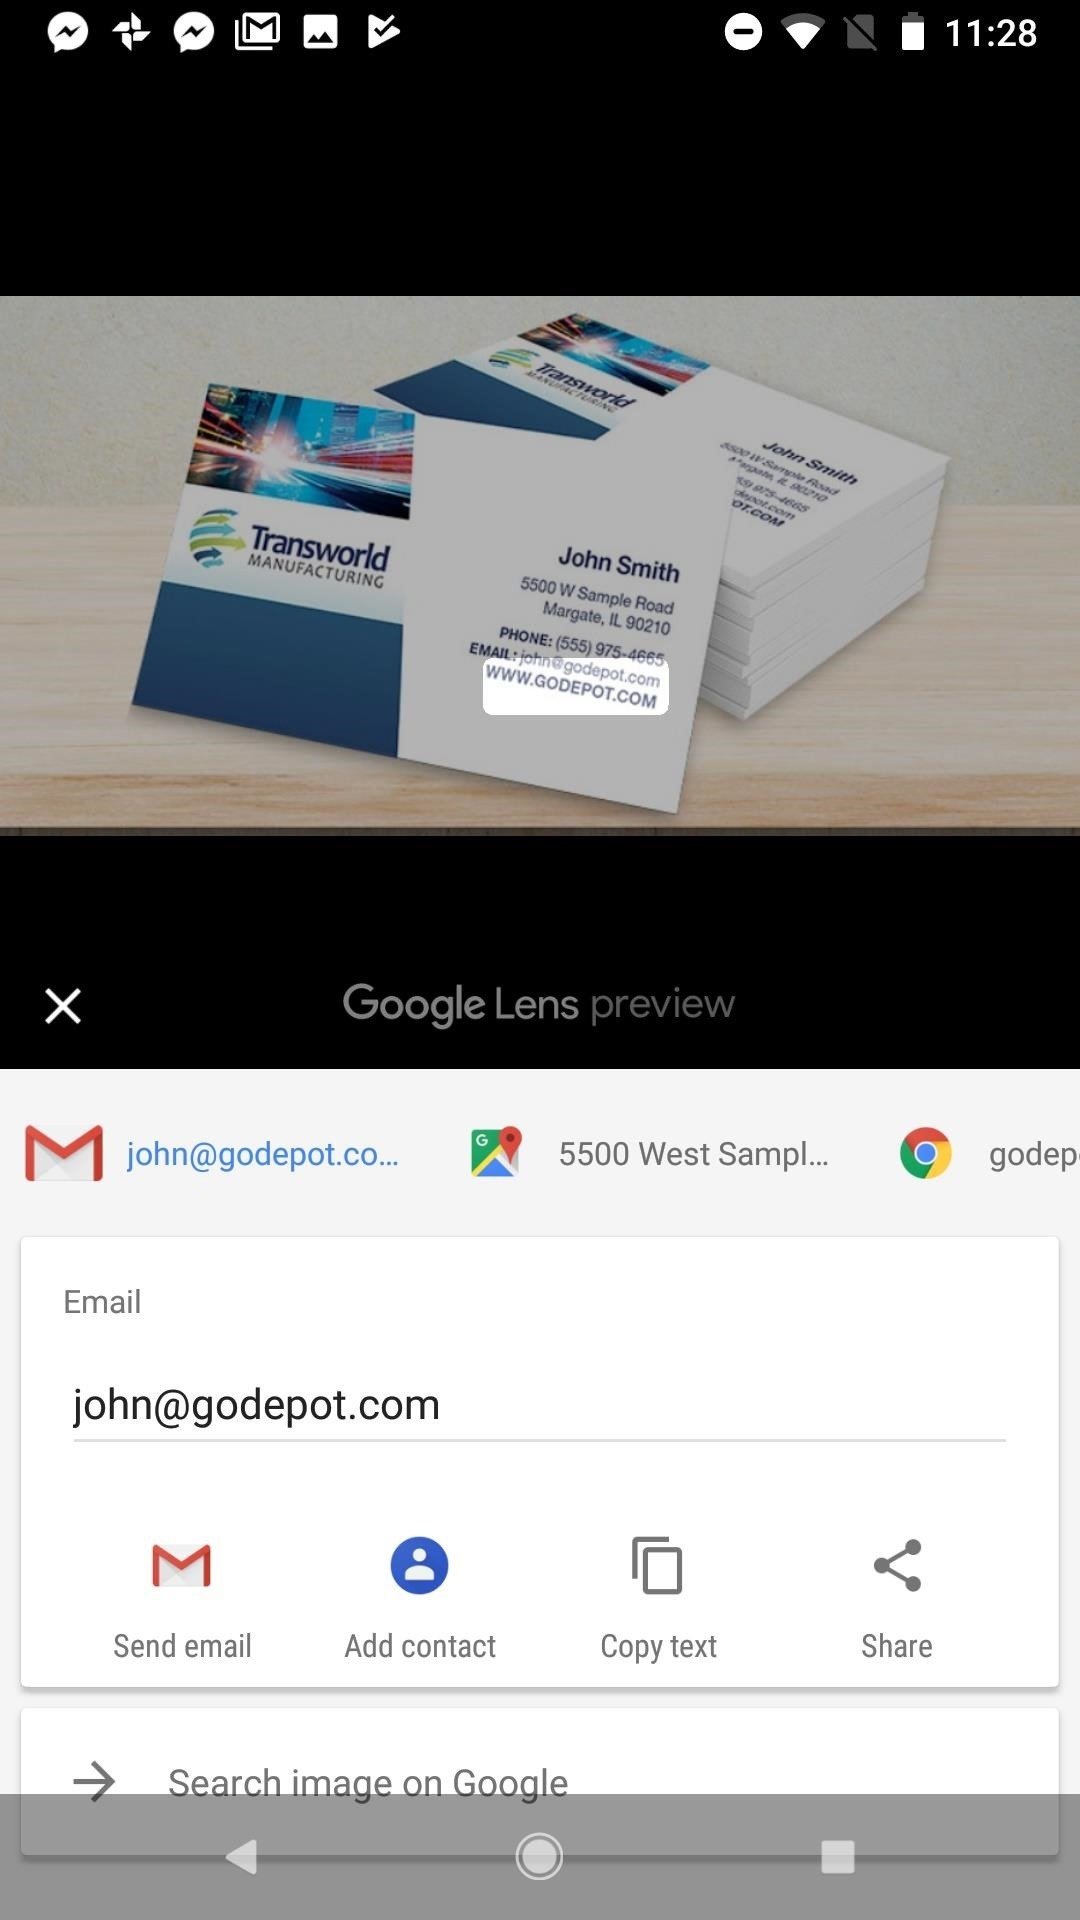 Google Photos 101: How to Use Google Lens to Save Contact Info from Business Cards